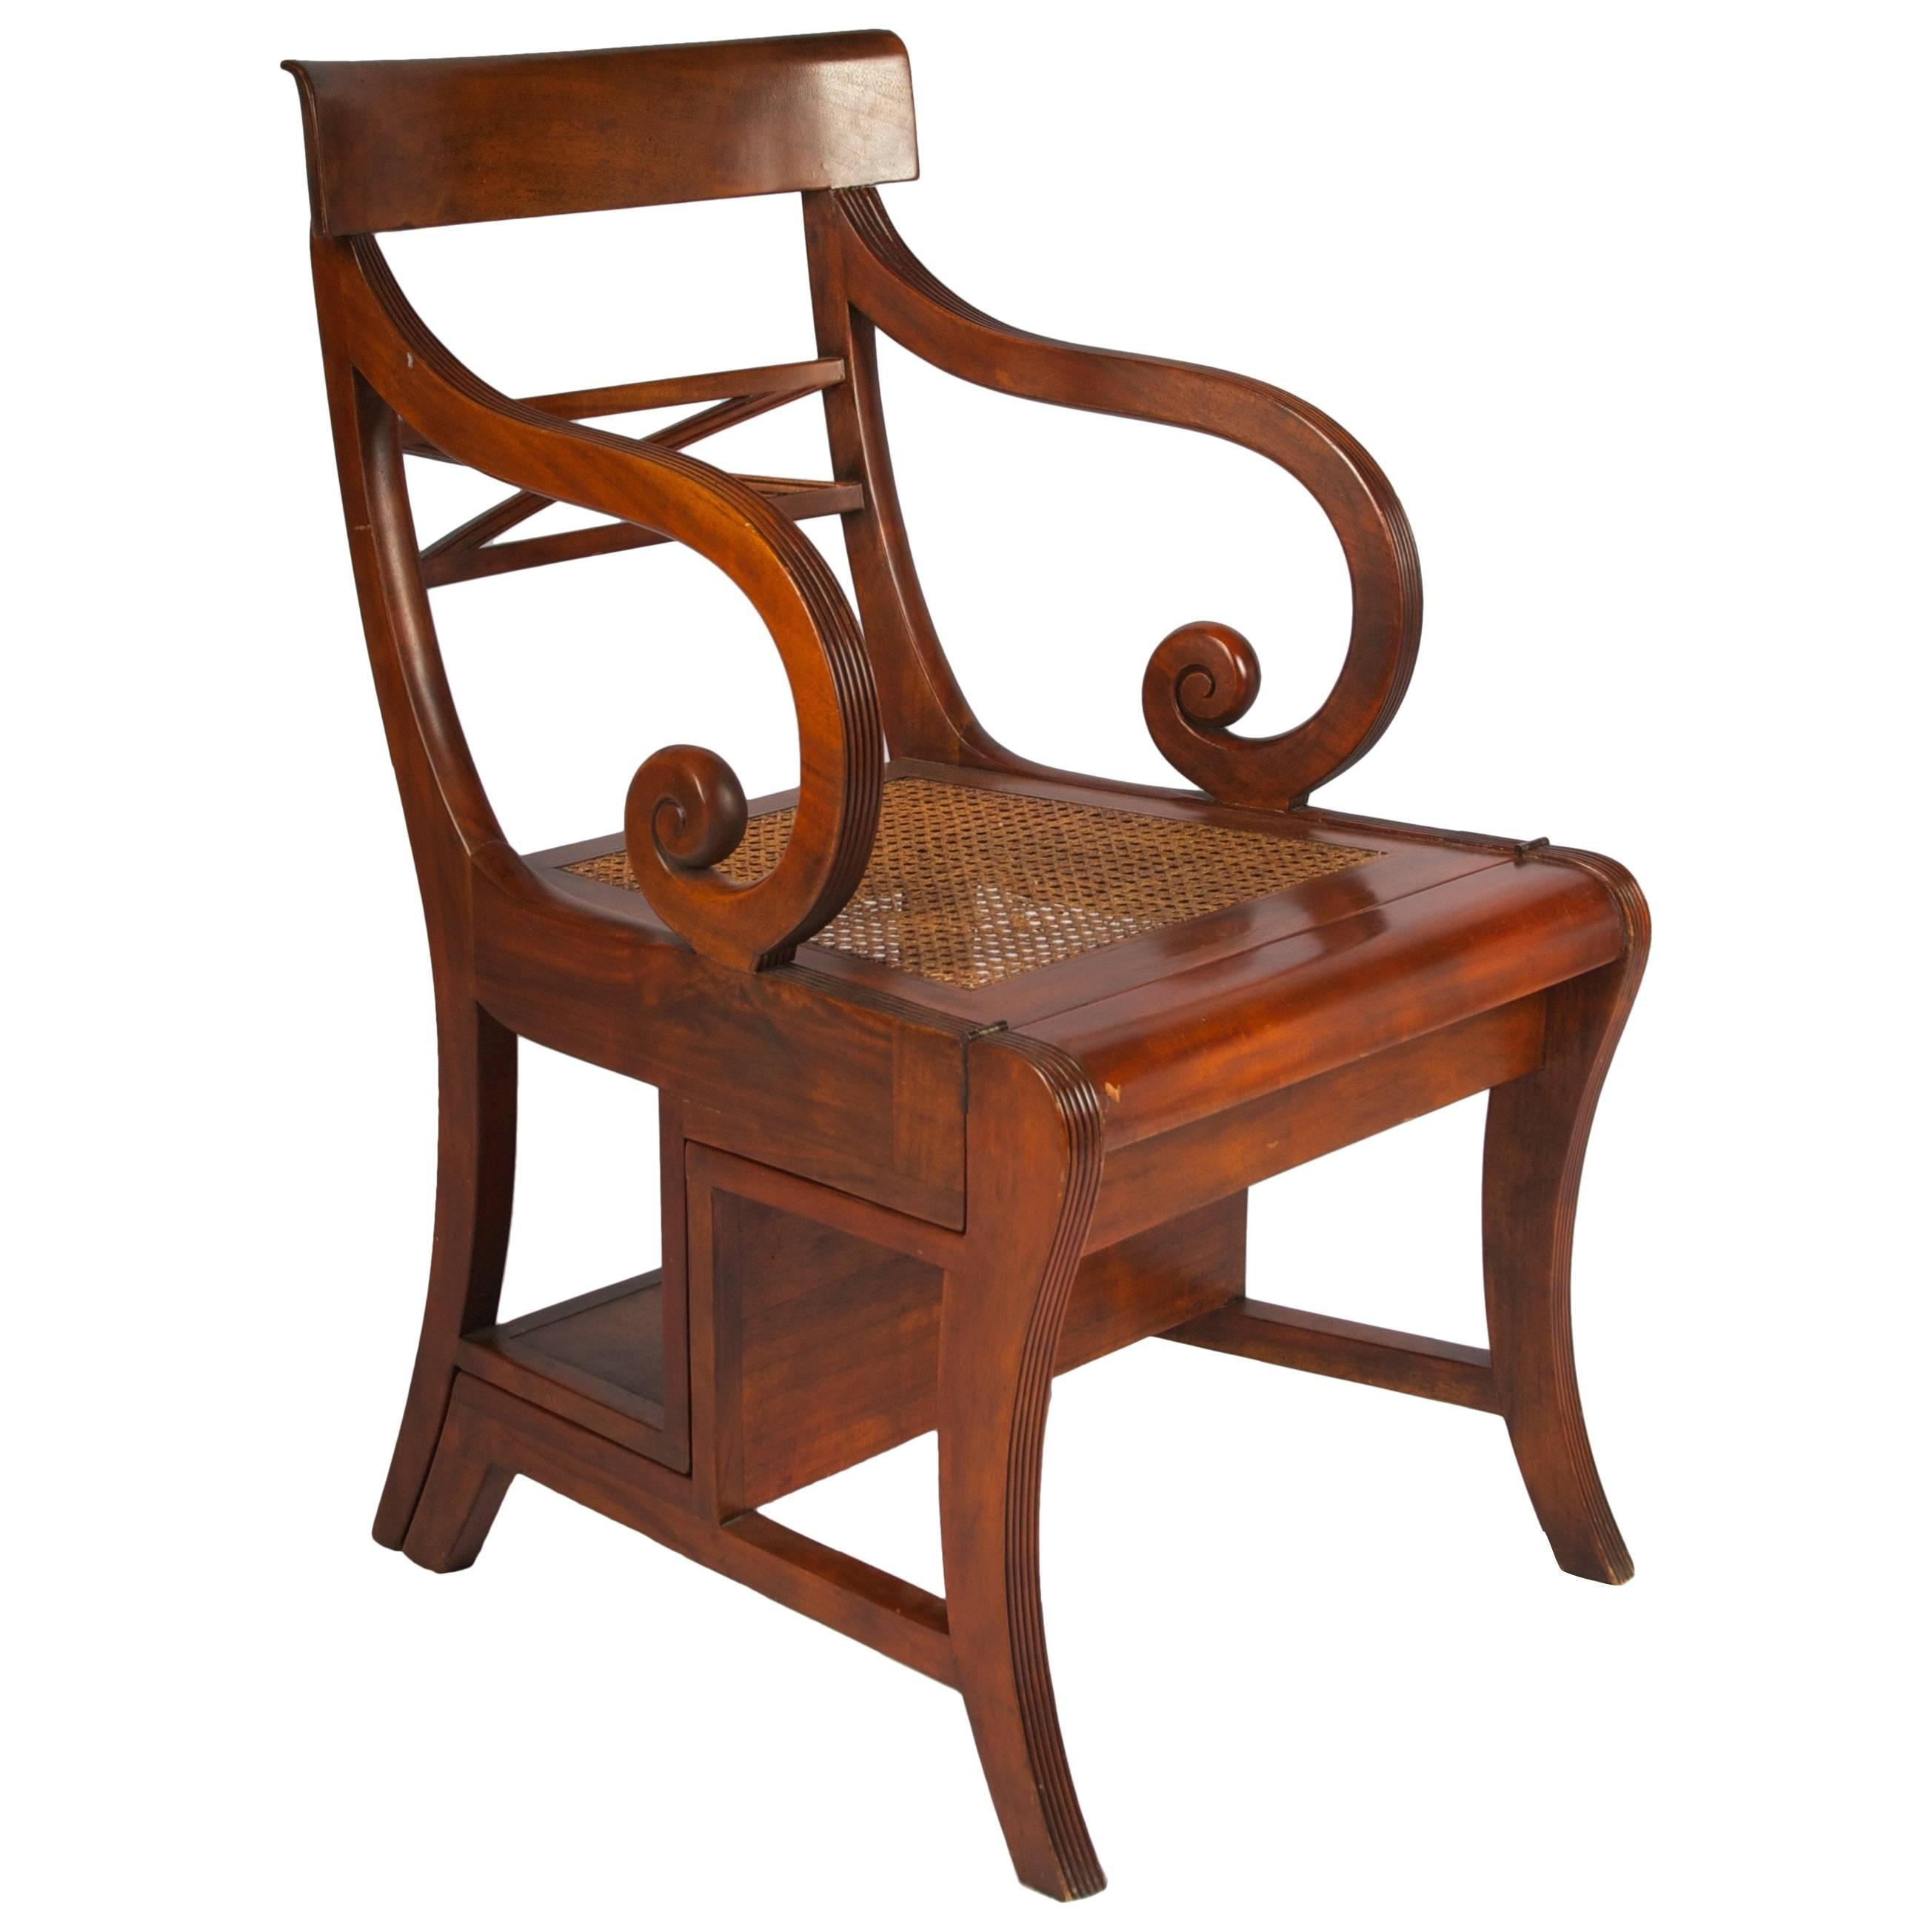 Late 19th Century Regency Style Metamorphic Armchair or Library Ladder